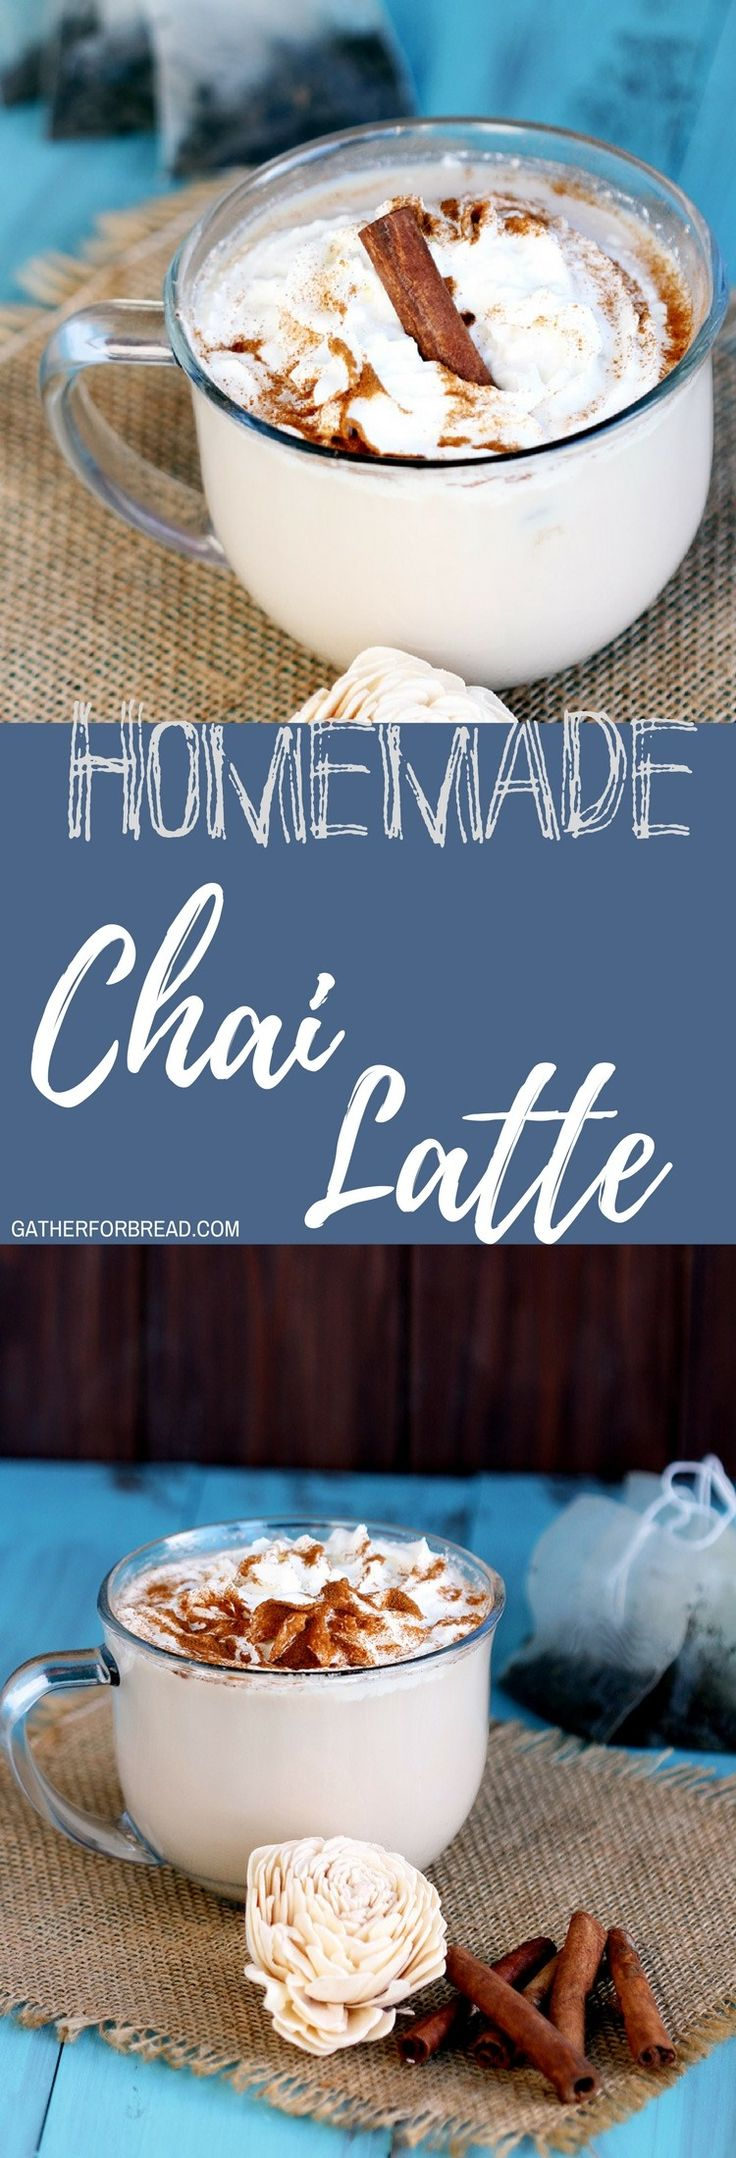 Chai Tea Latte for One – Recipe for DIY Chai tea made at home in the Keurig is delicious. Made with chai teabag, easy and ready in 5 minutes